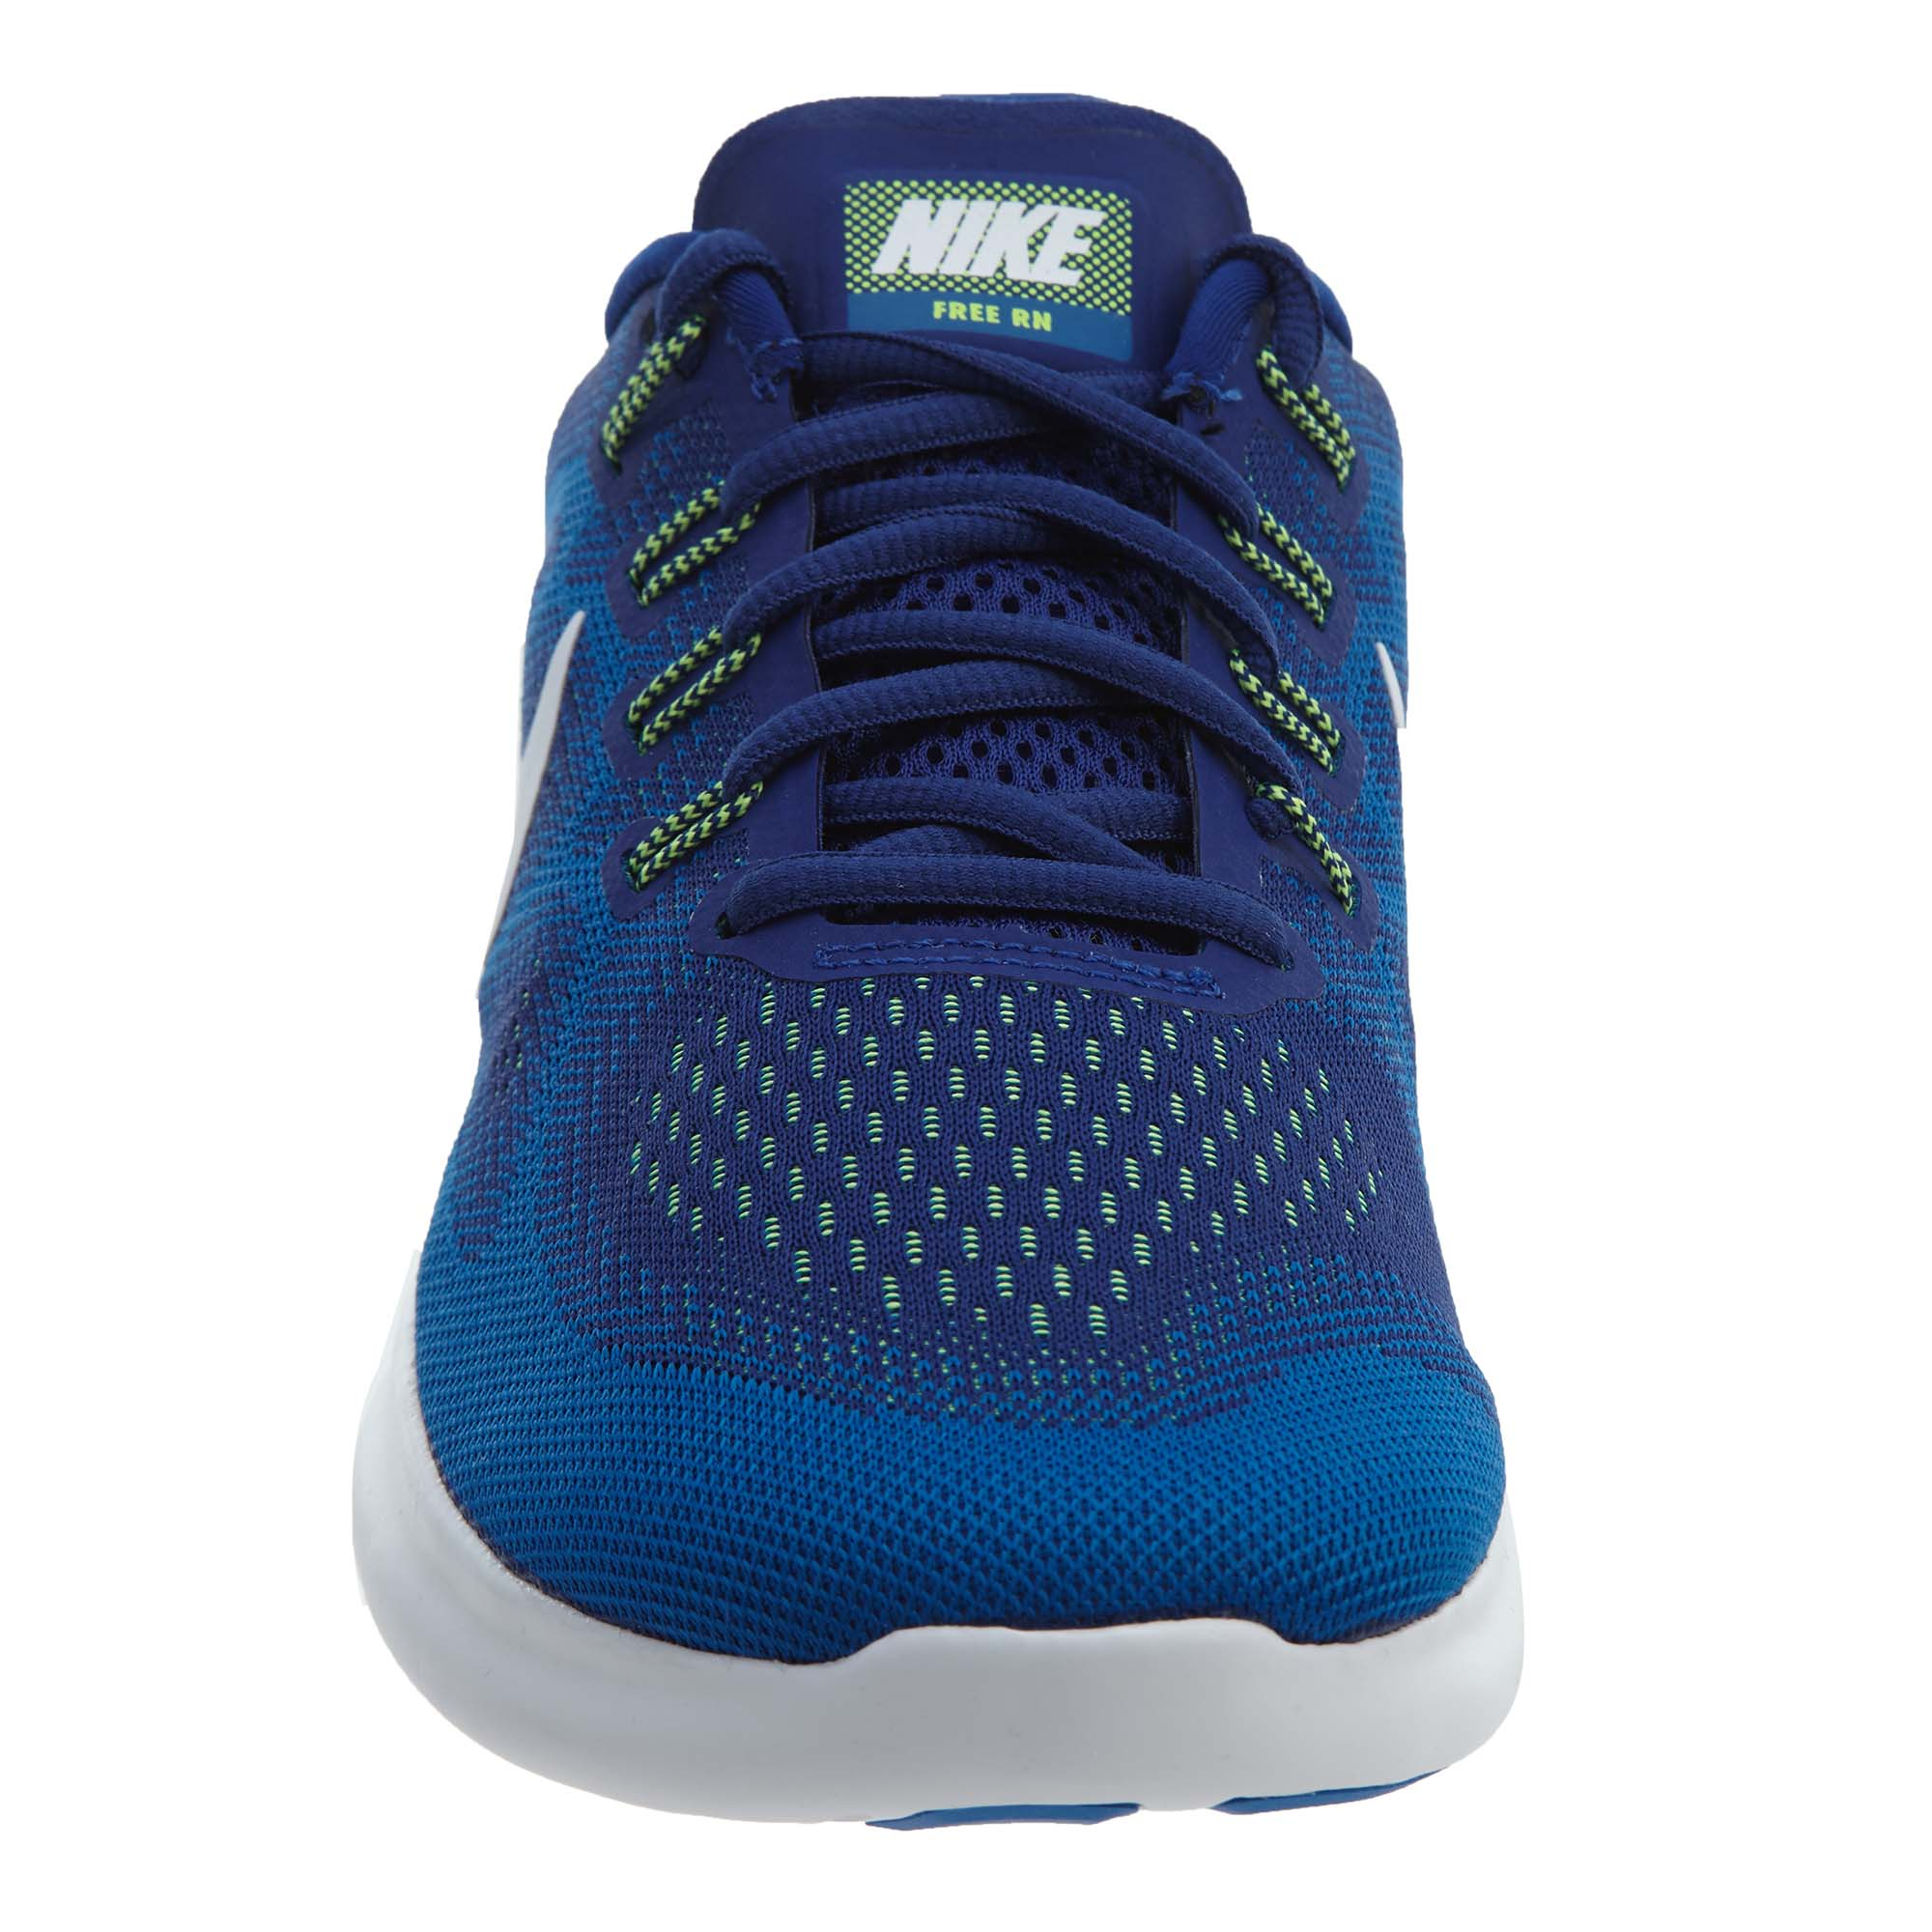 76a2aa90a7acc Nike Mens Free RN 2017 Running Shoes 880839-401